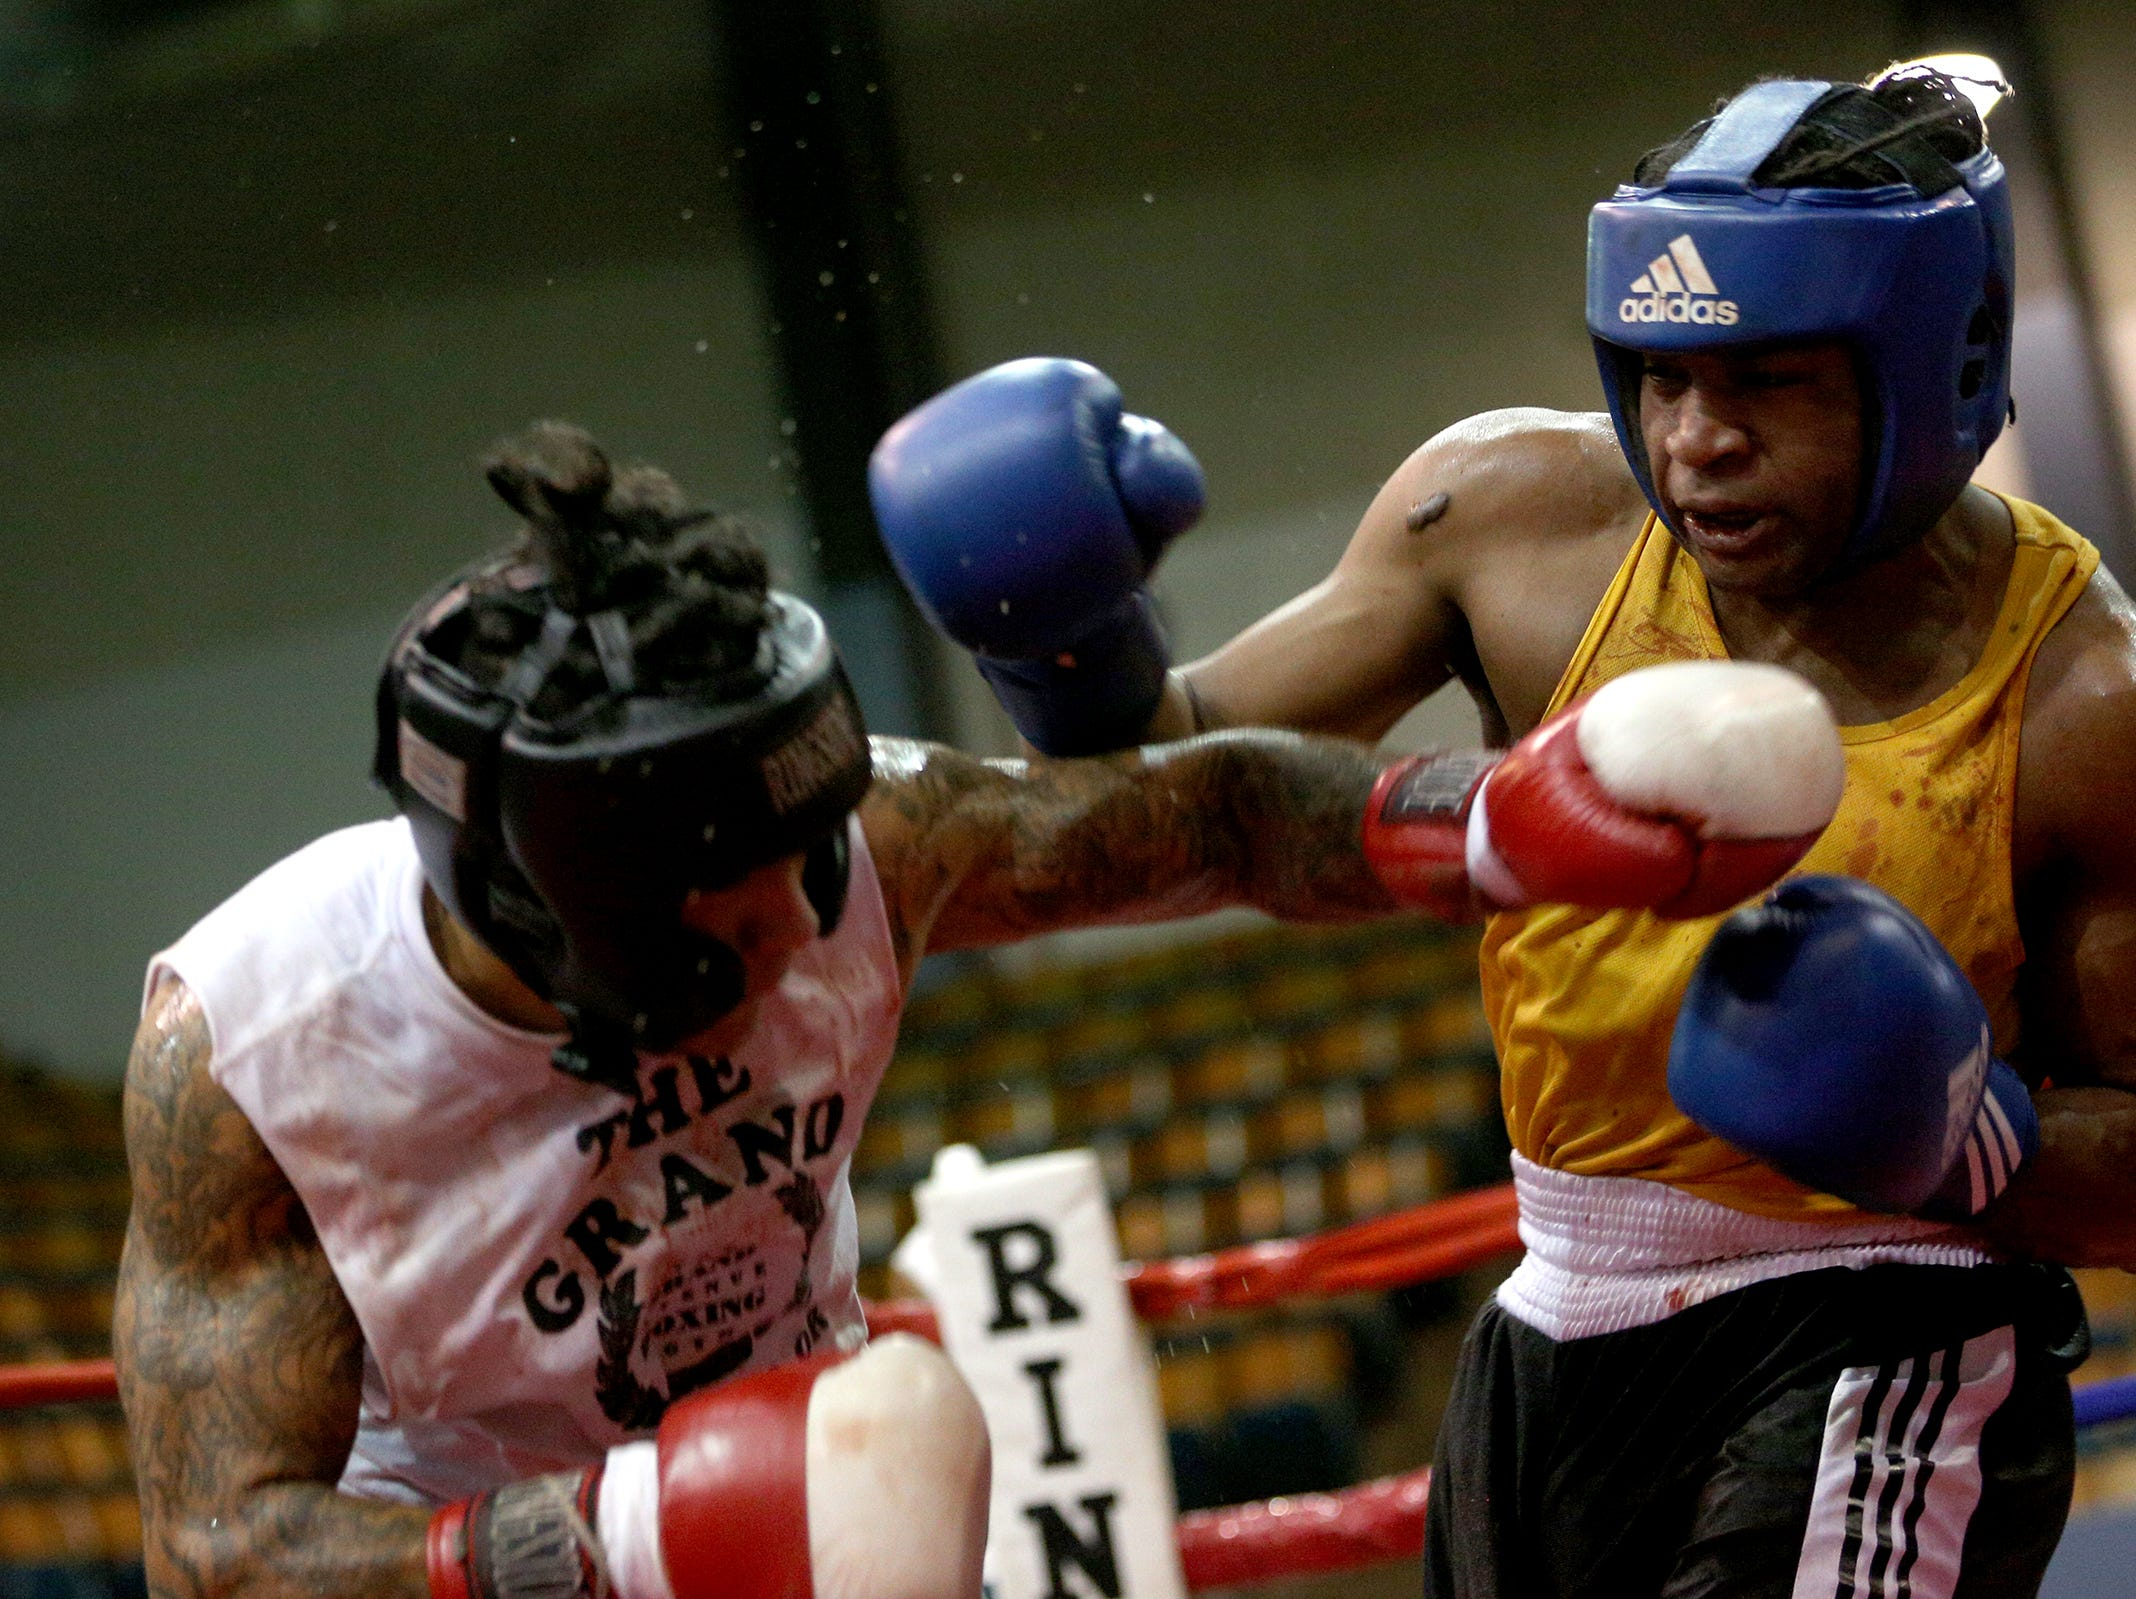 Joseph Aguilar (left) of Happy Valley takes on Terance Oddie of Vancouver at the Oregon Golden Gloves championship matches at the Salem Armory on Saturday, Feb. 2, 2019.